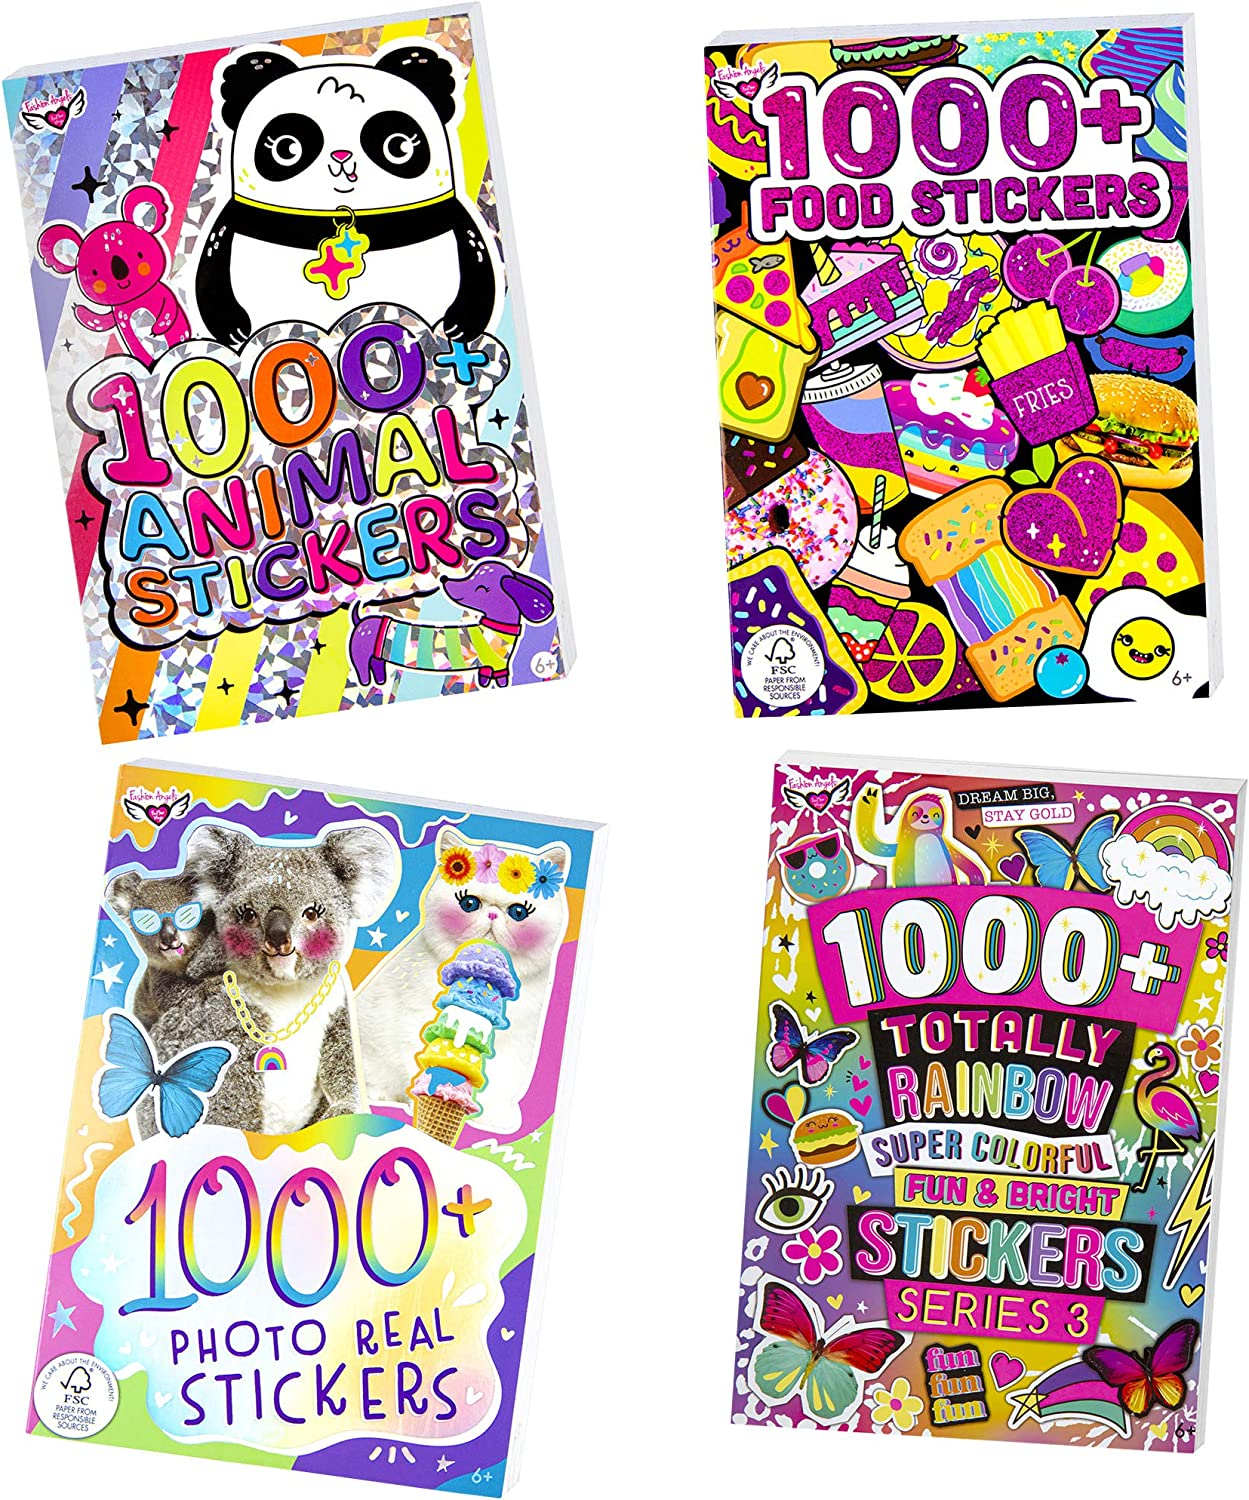 Fashion Angels Over 4000 Stickers-4 Book Set, Sticker Book for Kids Ages 6 and up, Colorful and Cute Animal, Food, Photo Real Themed Stickers, Amazon Exclusive